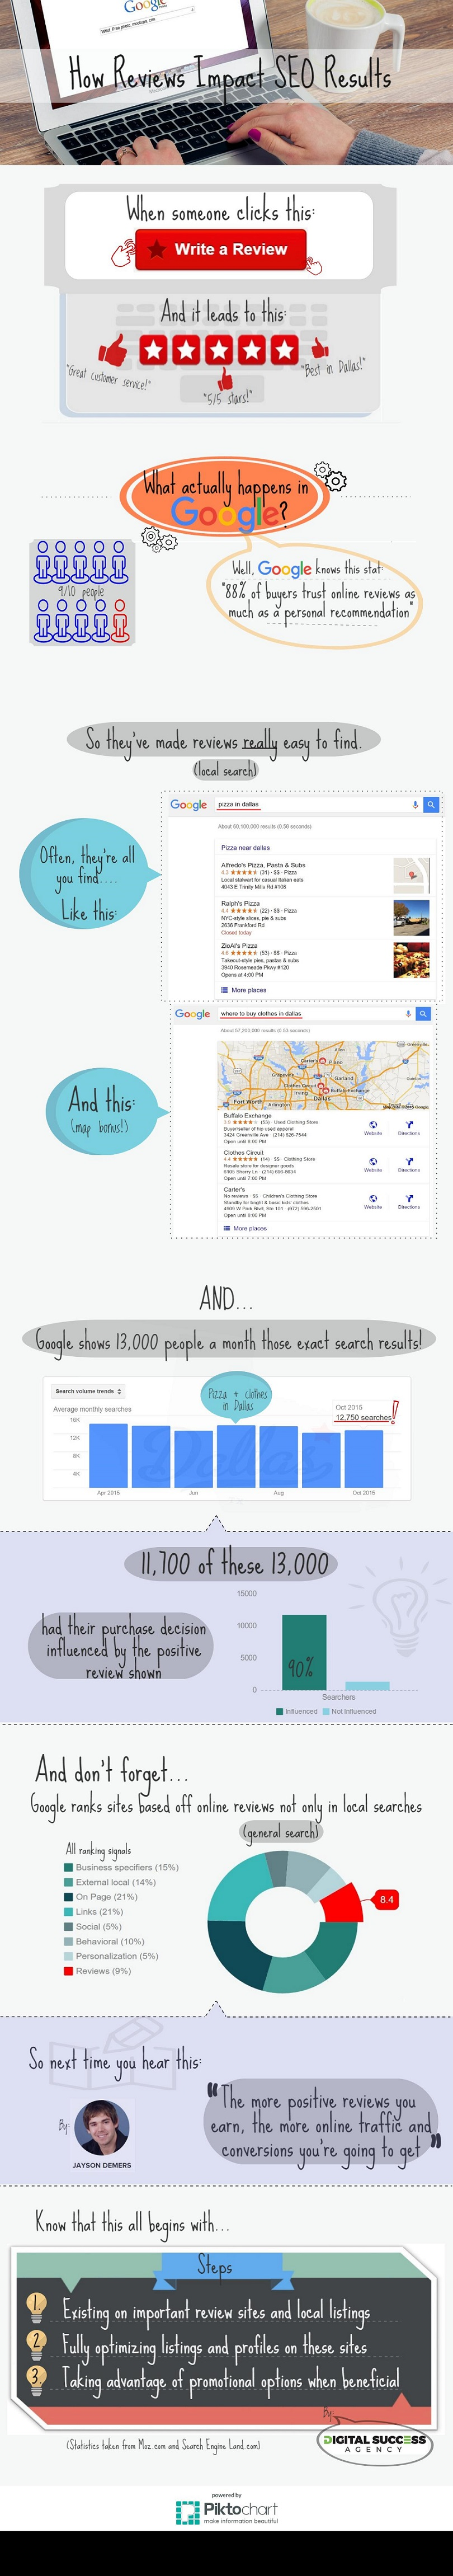 How Reviews Impact SEO Results infographic